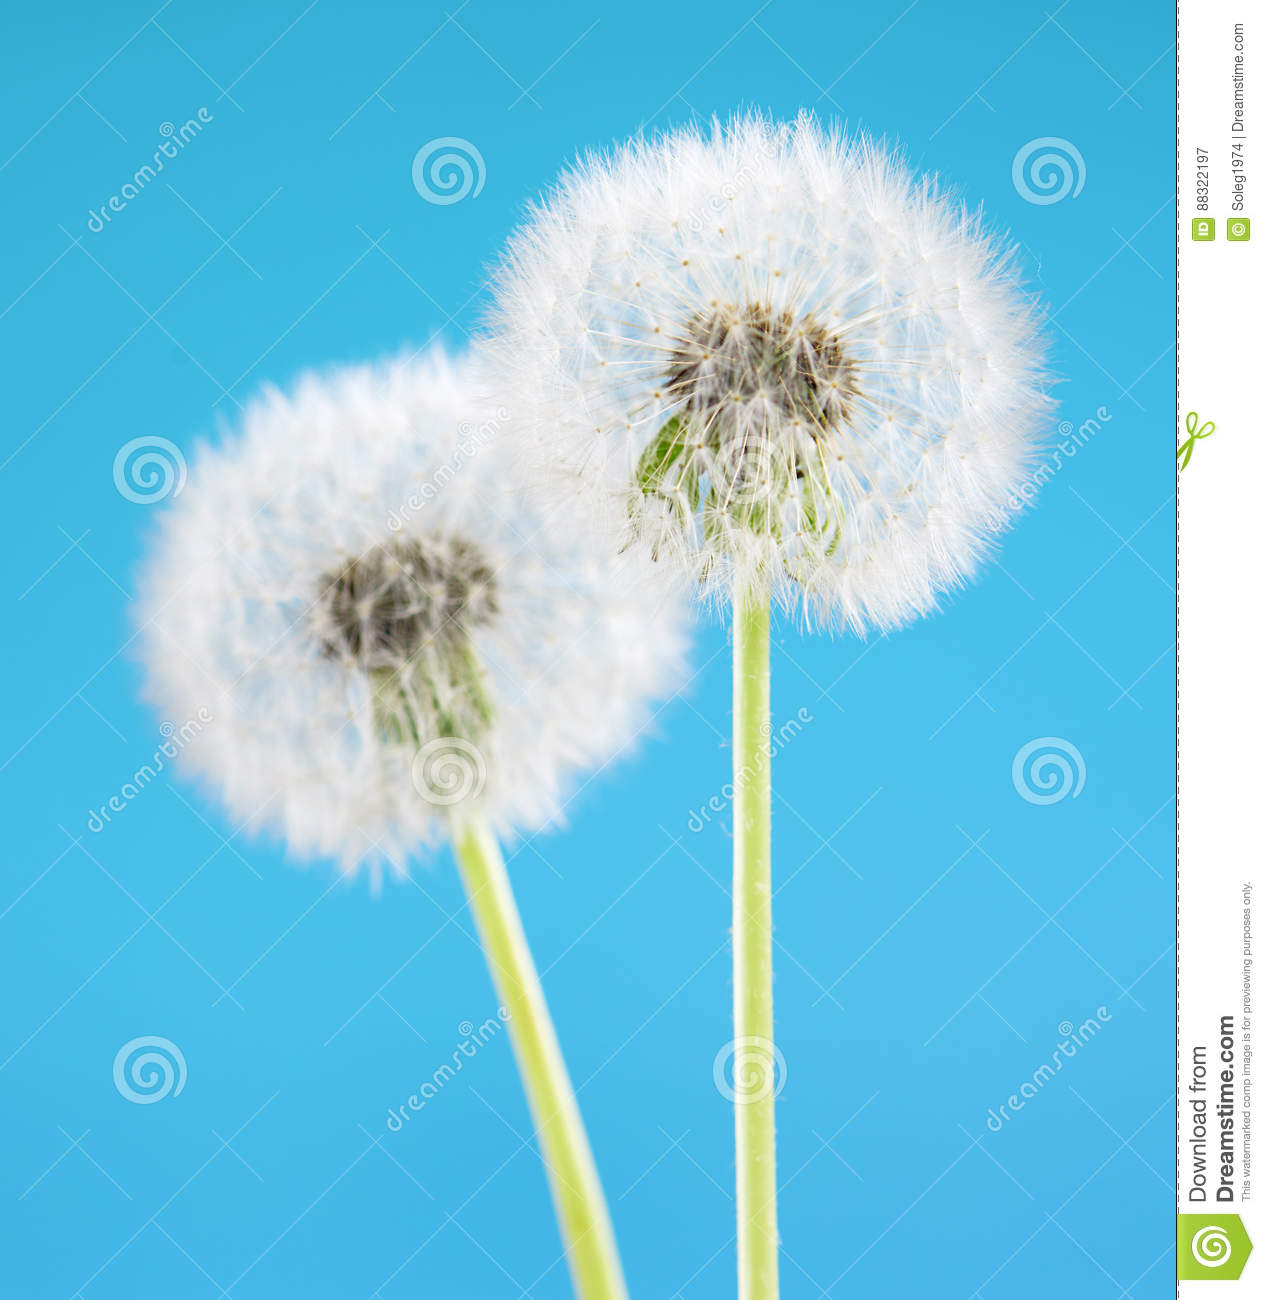 Dandelion Flower On Sky Background. Object Isolated On